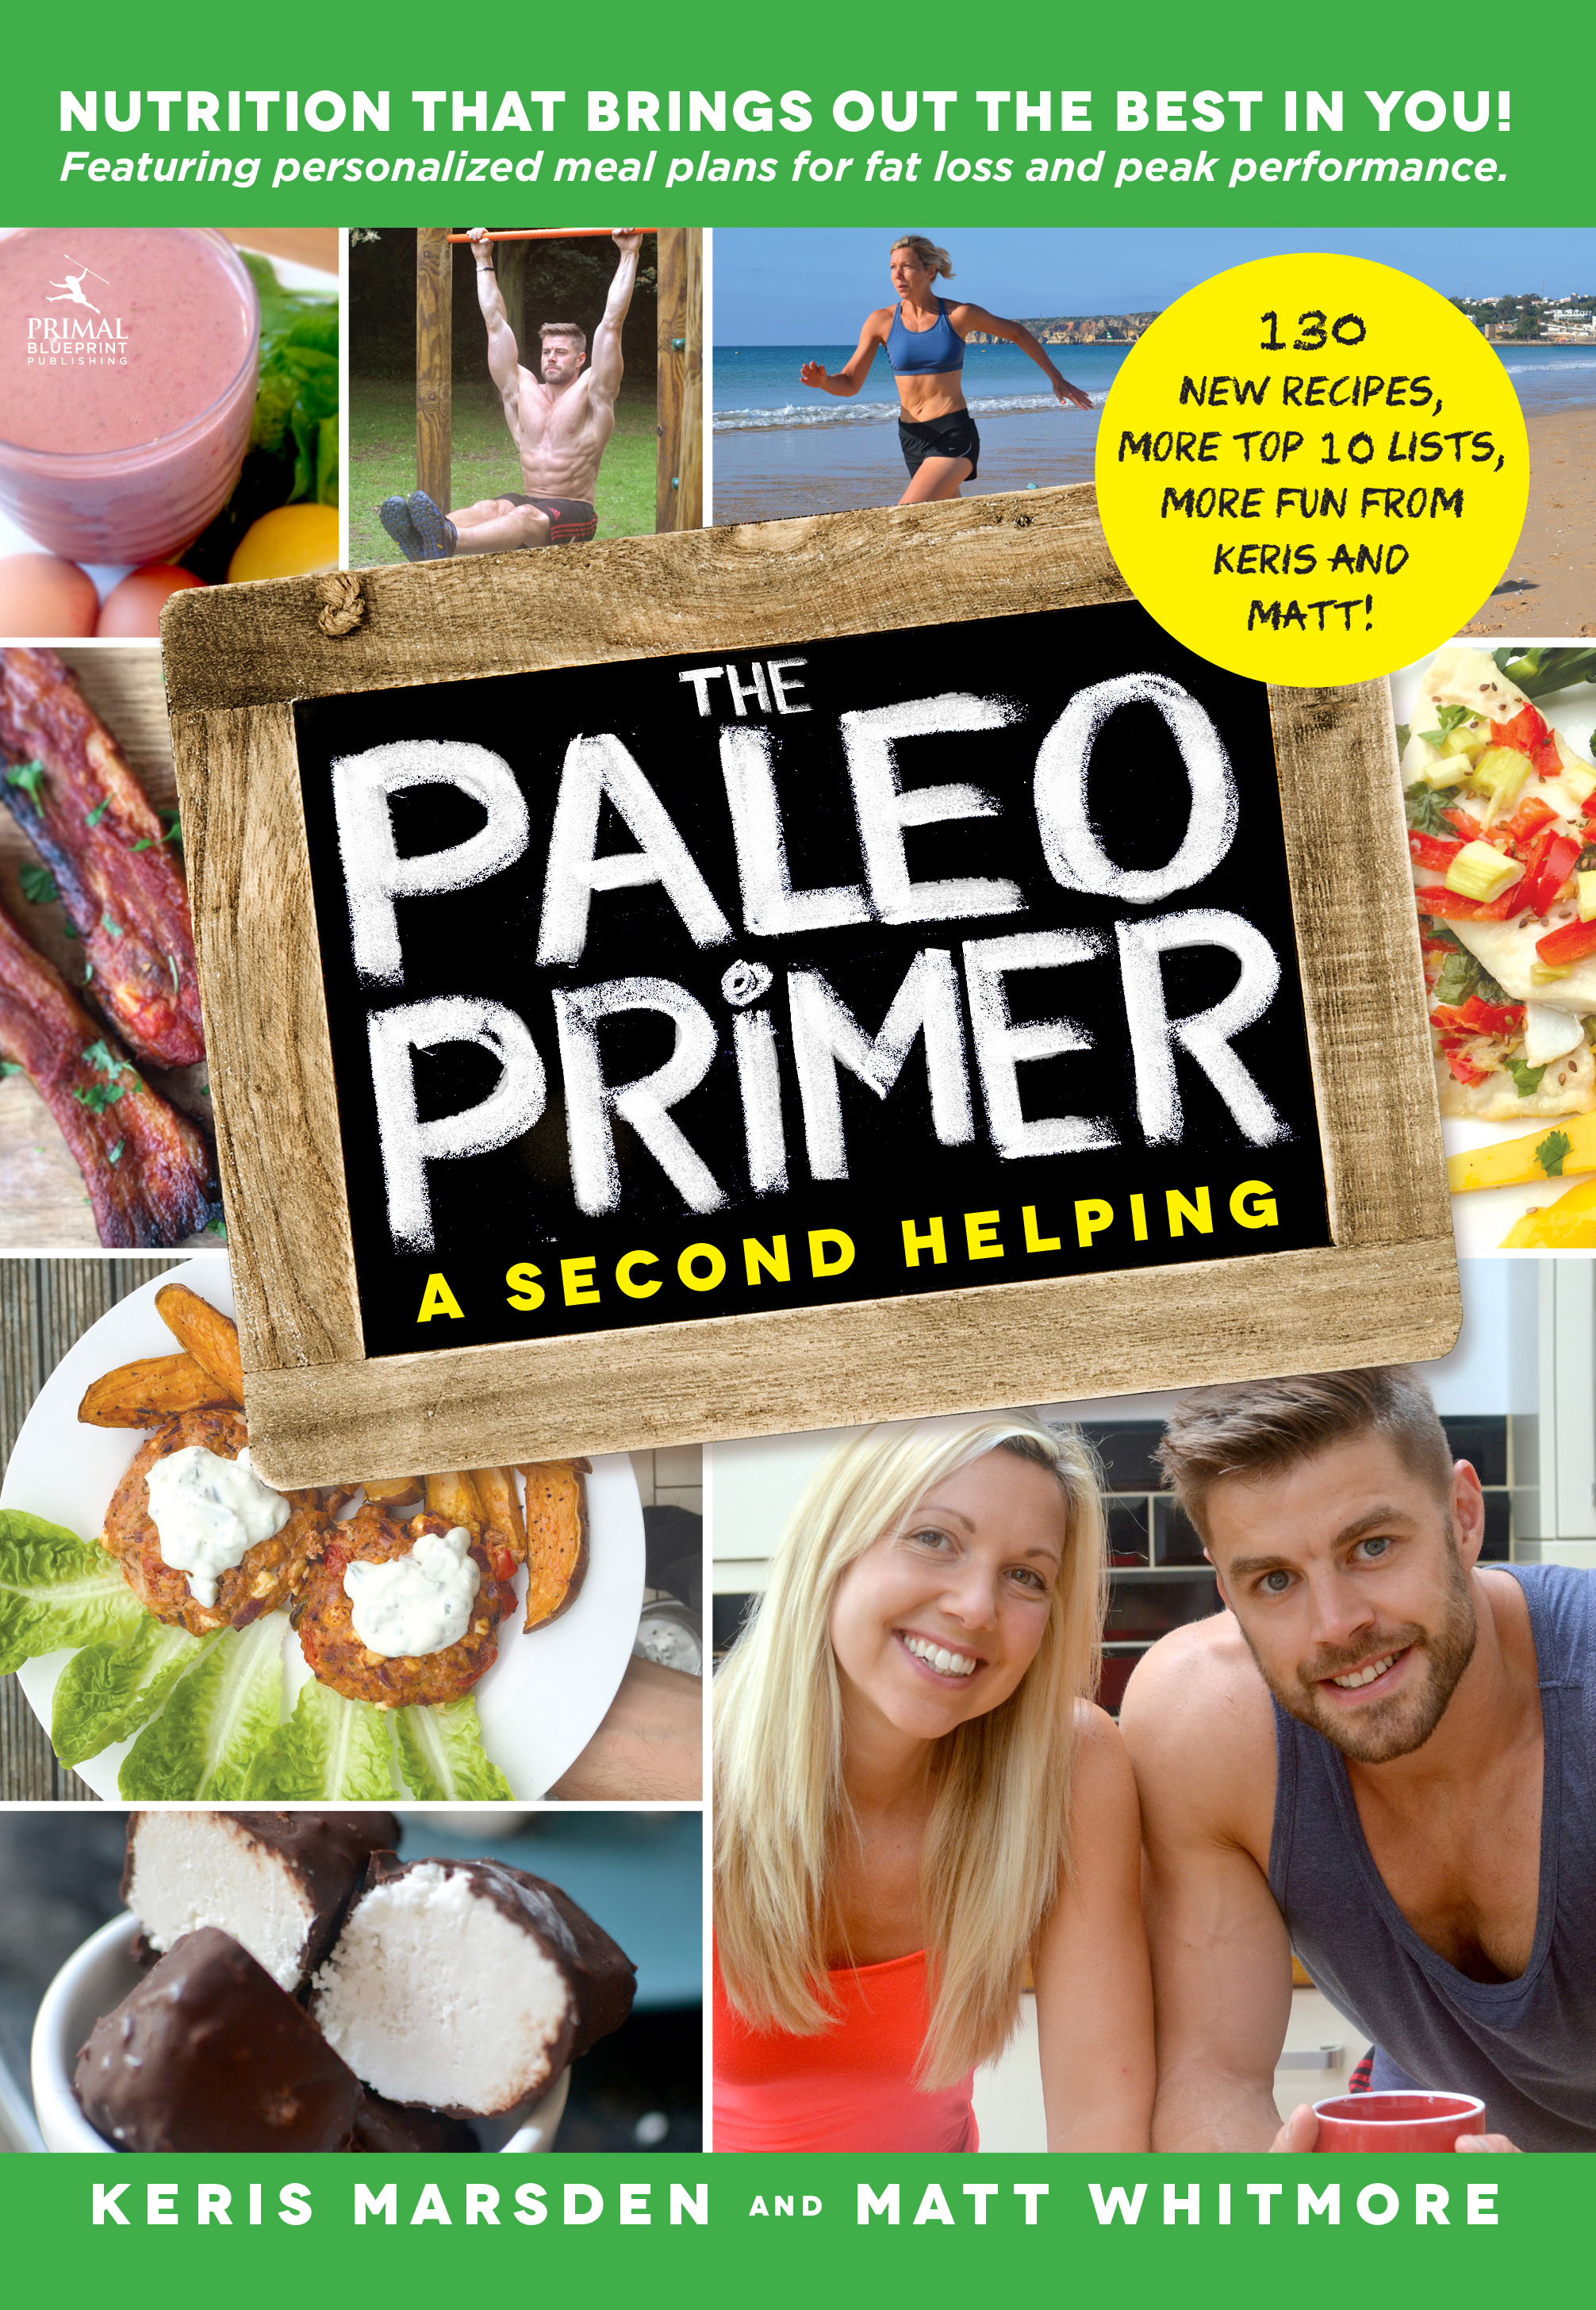 The Paleo Primer (A Second Helping)